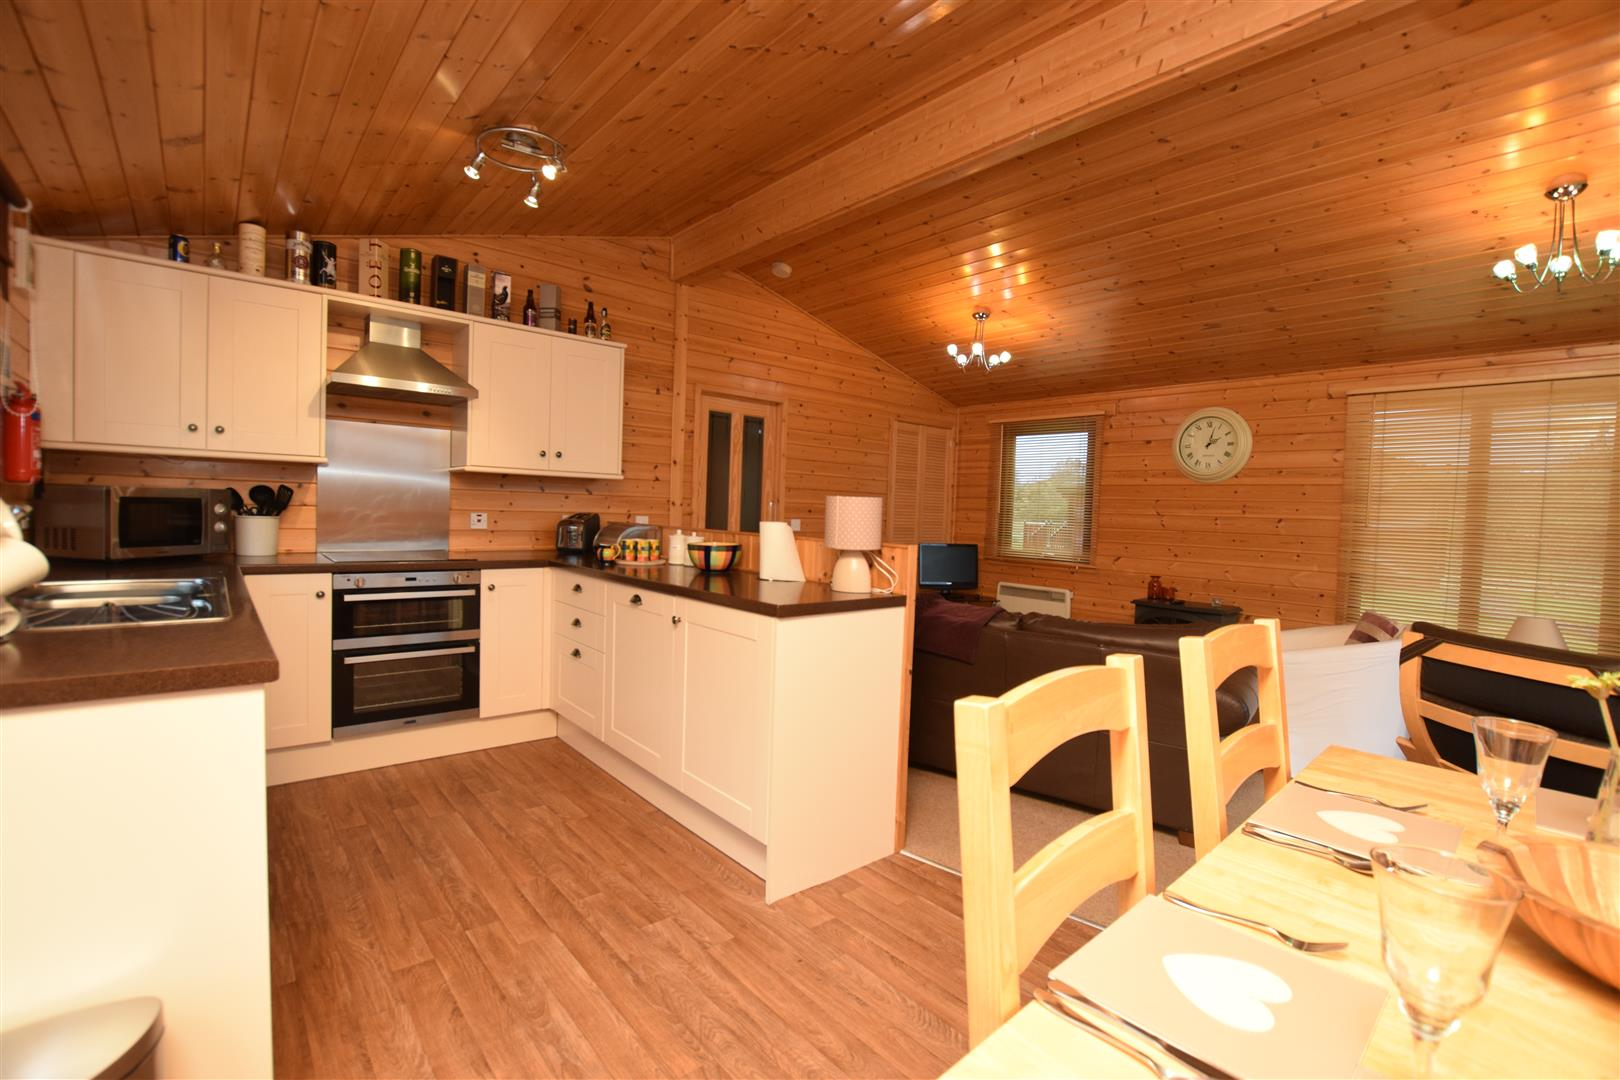 2, Whitehills Lodge, Glenisla, Perthshire, PH11 8PF, UK